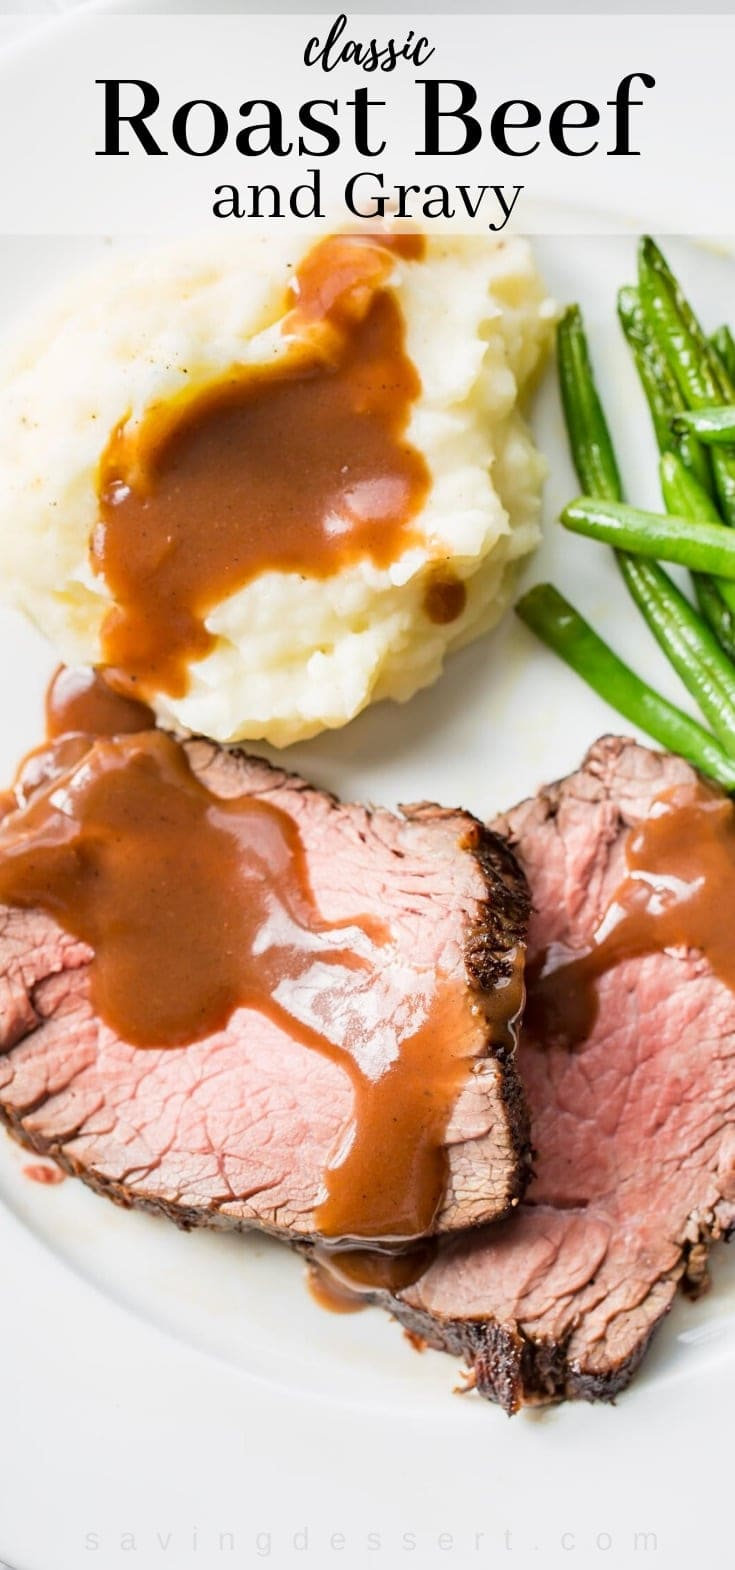 A plate filled with classic roast beef and gravy with mashed potatoes and green beans